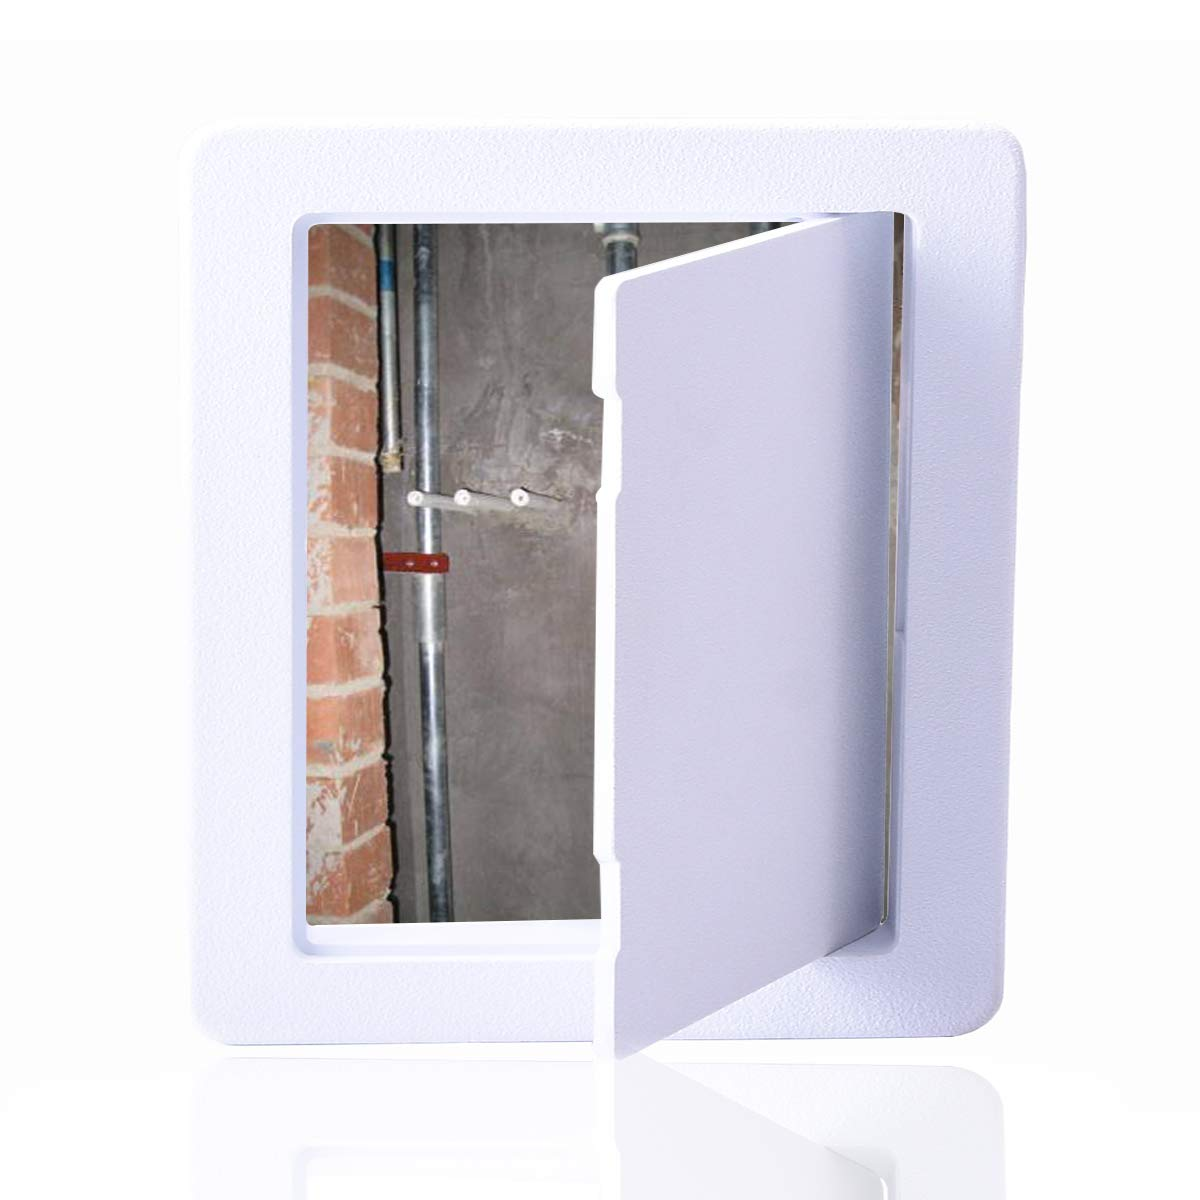 Reinforced Hinged Plastic Access Panel for Drywall Ceiling 8 x 8 Inch White Access Doors Reinforced Hinged Access Panel by MaRoner